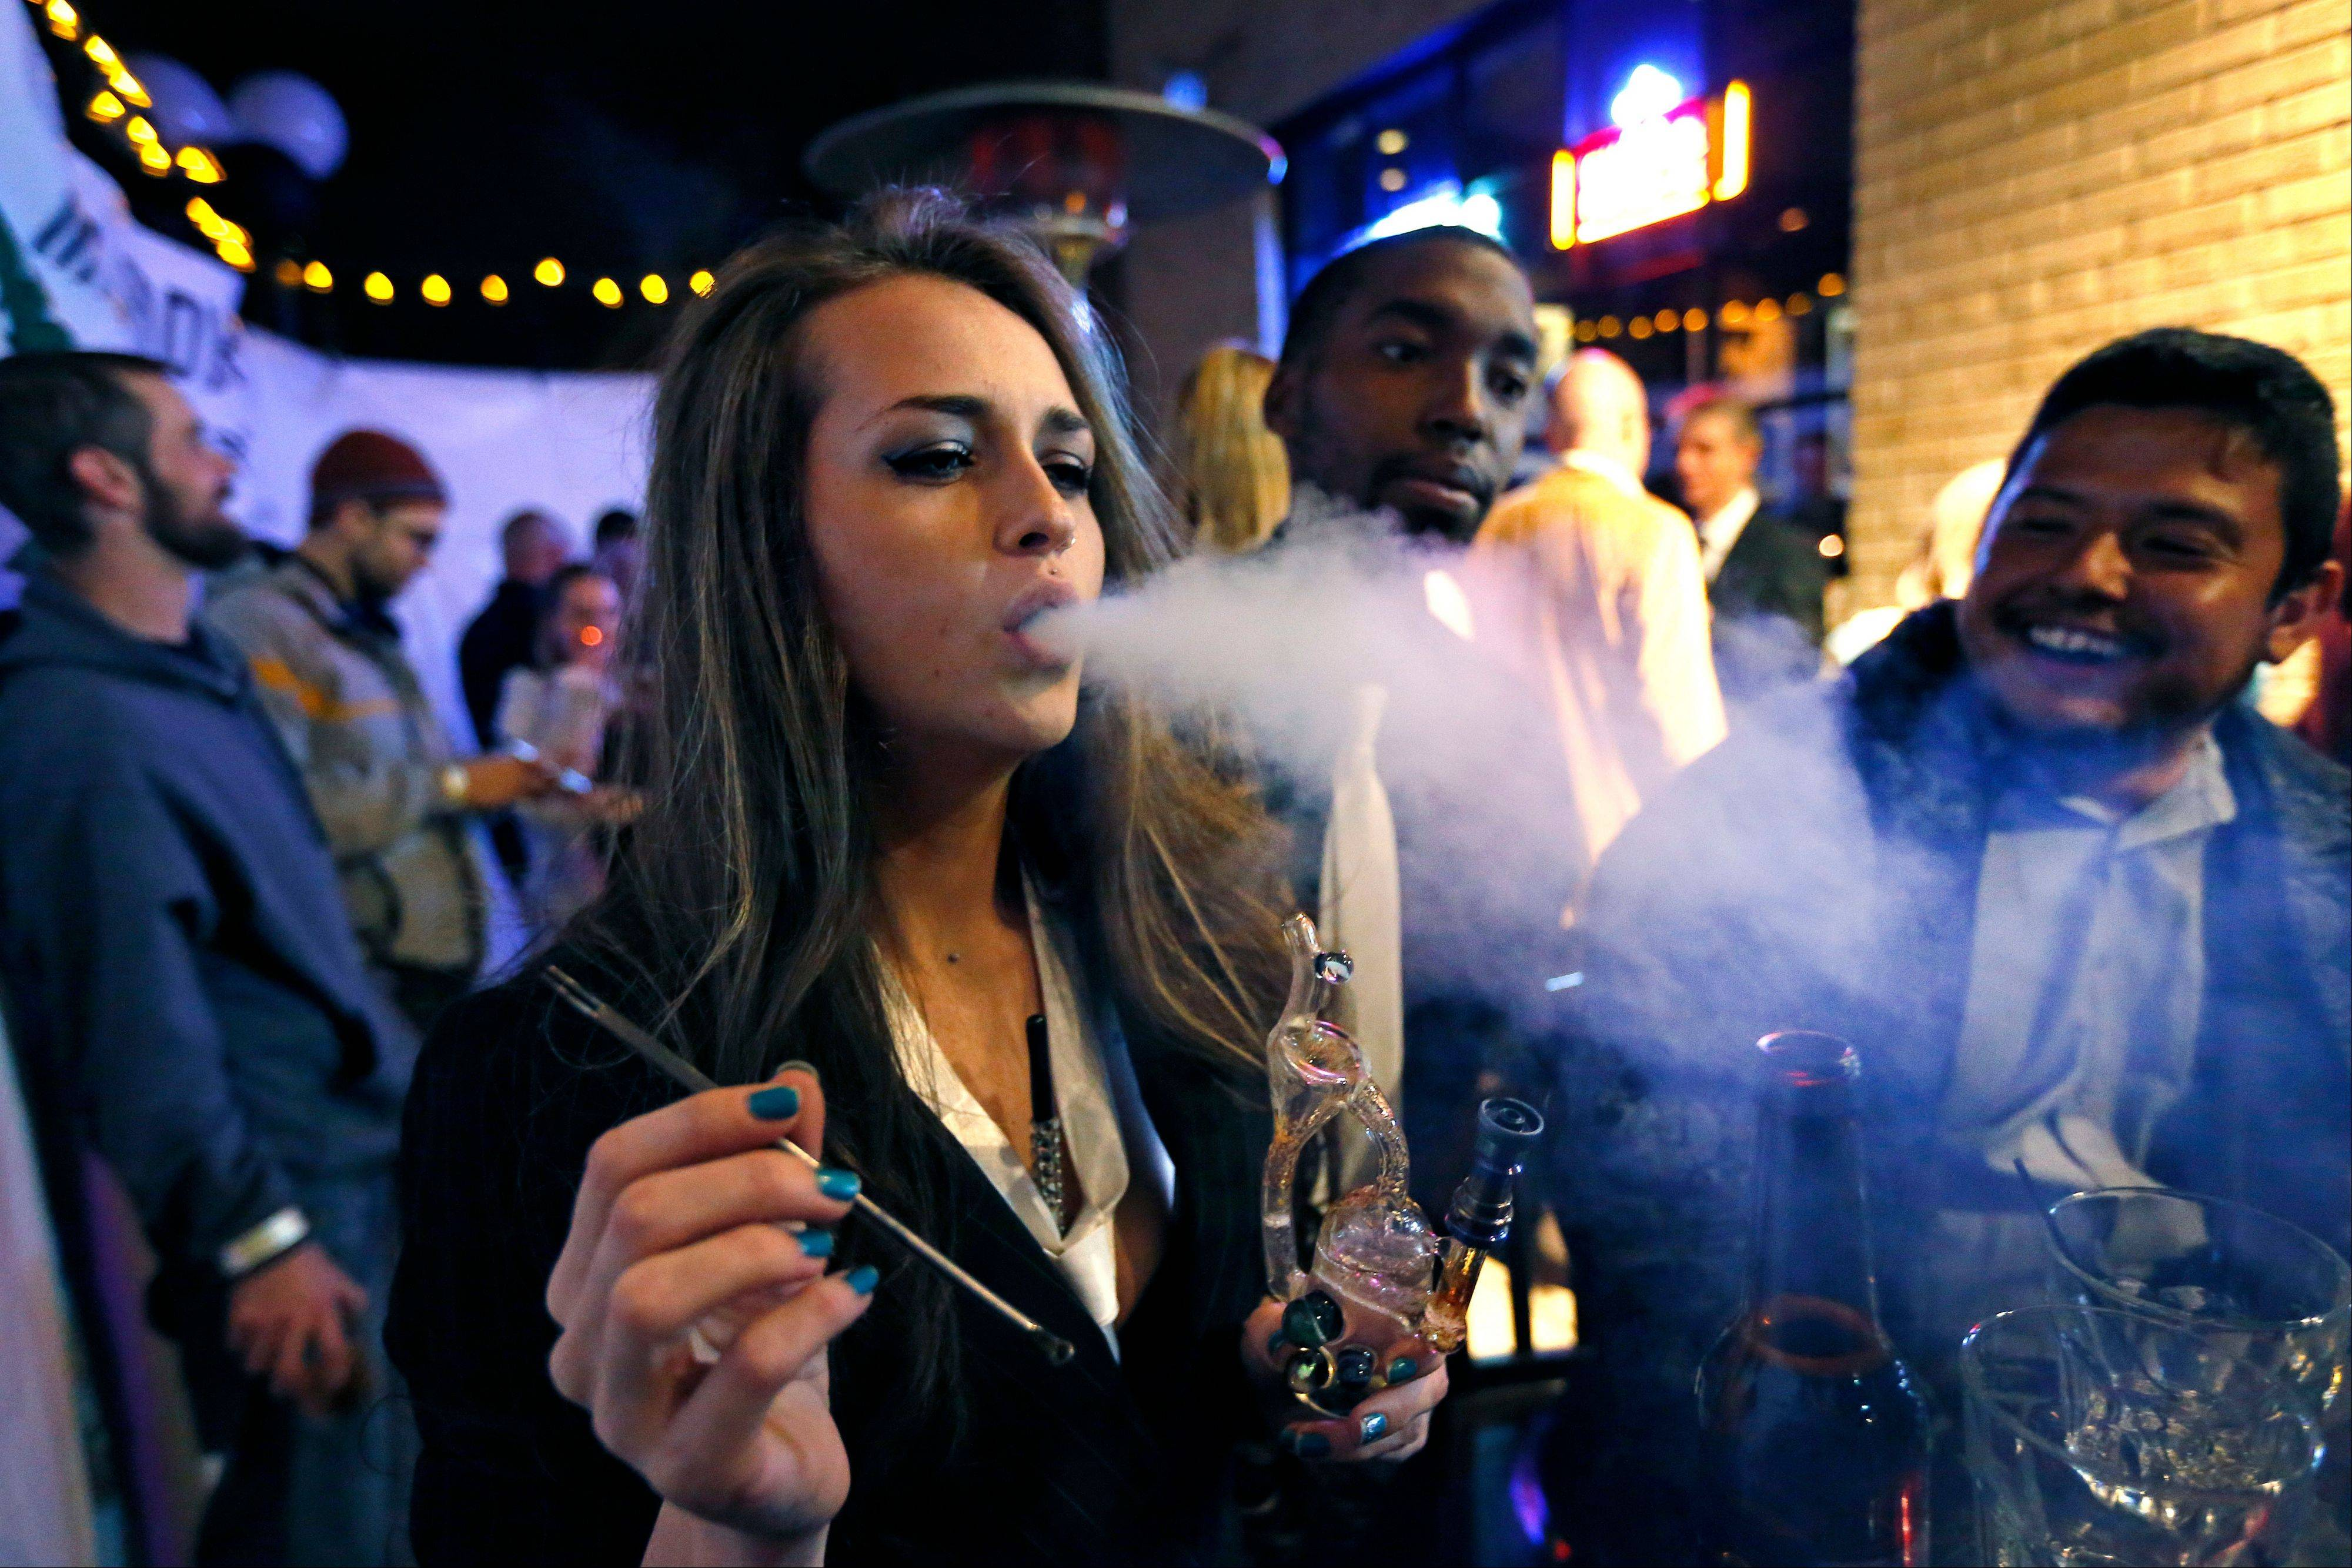 Partygoers smoke marijuana Tuesday during a Prohibition-era themed New Year's Eve party celebrating the start of retail pot sales in Denver.